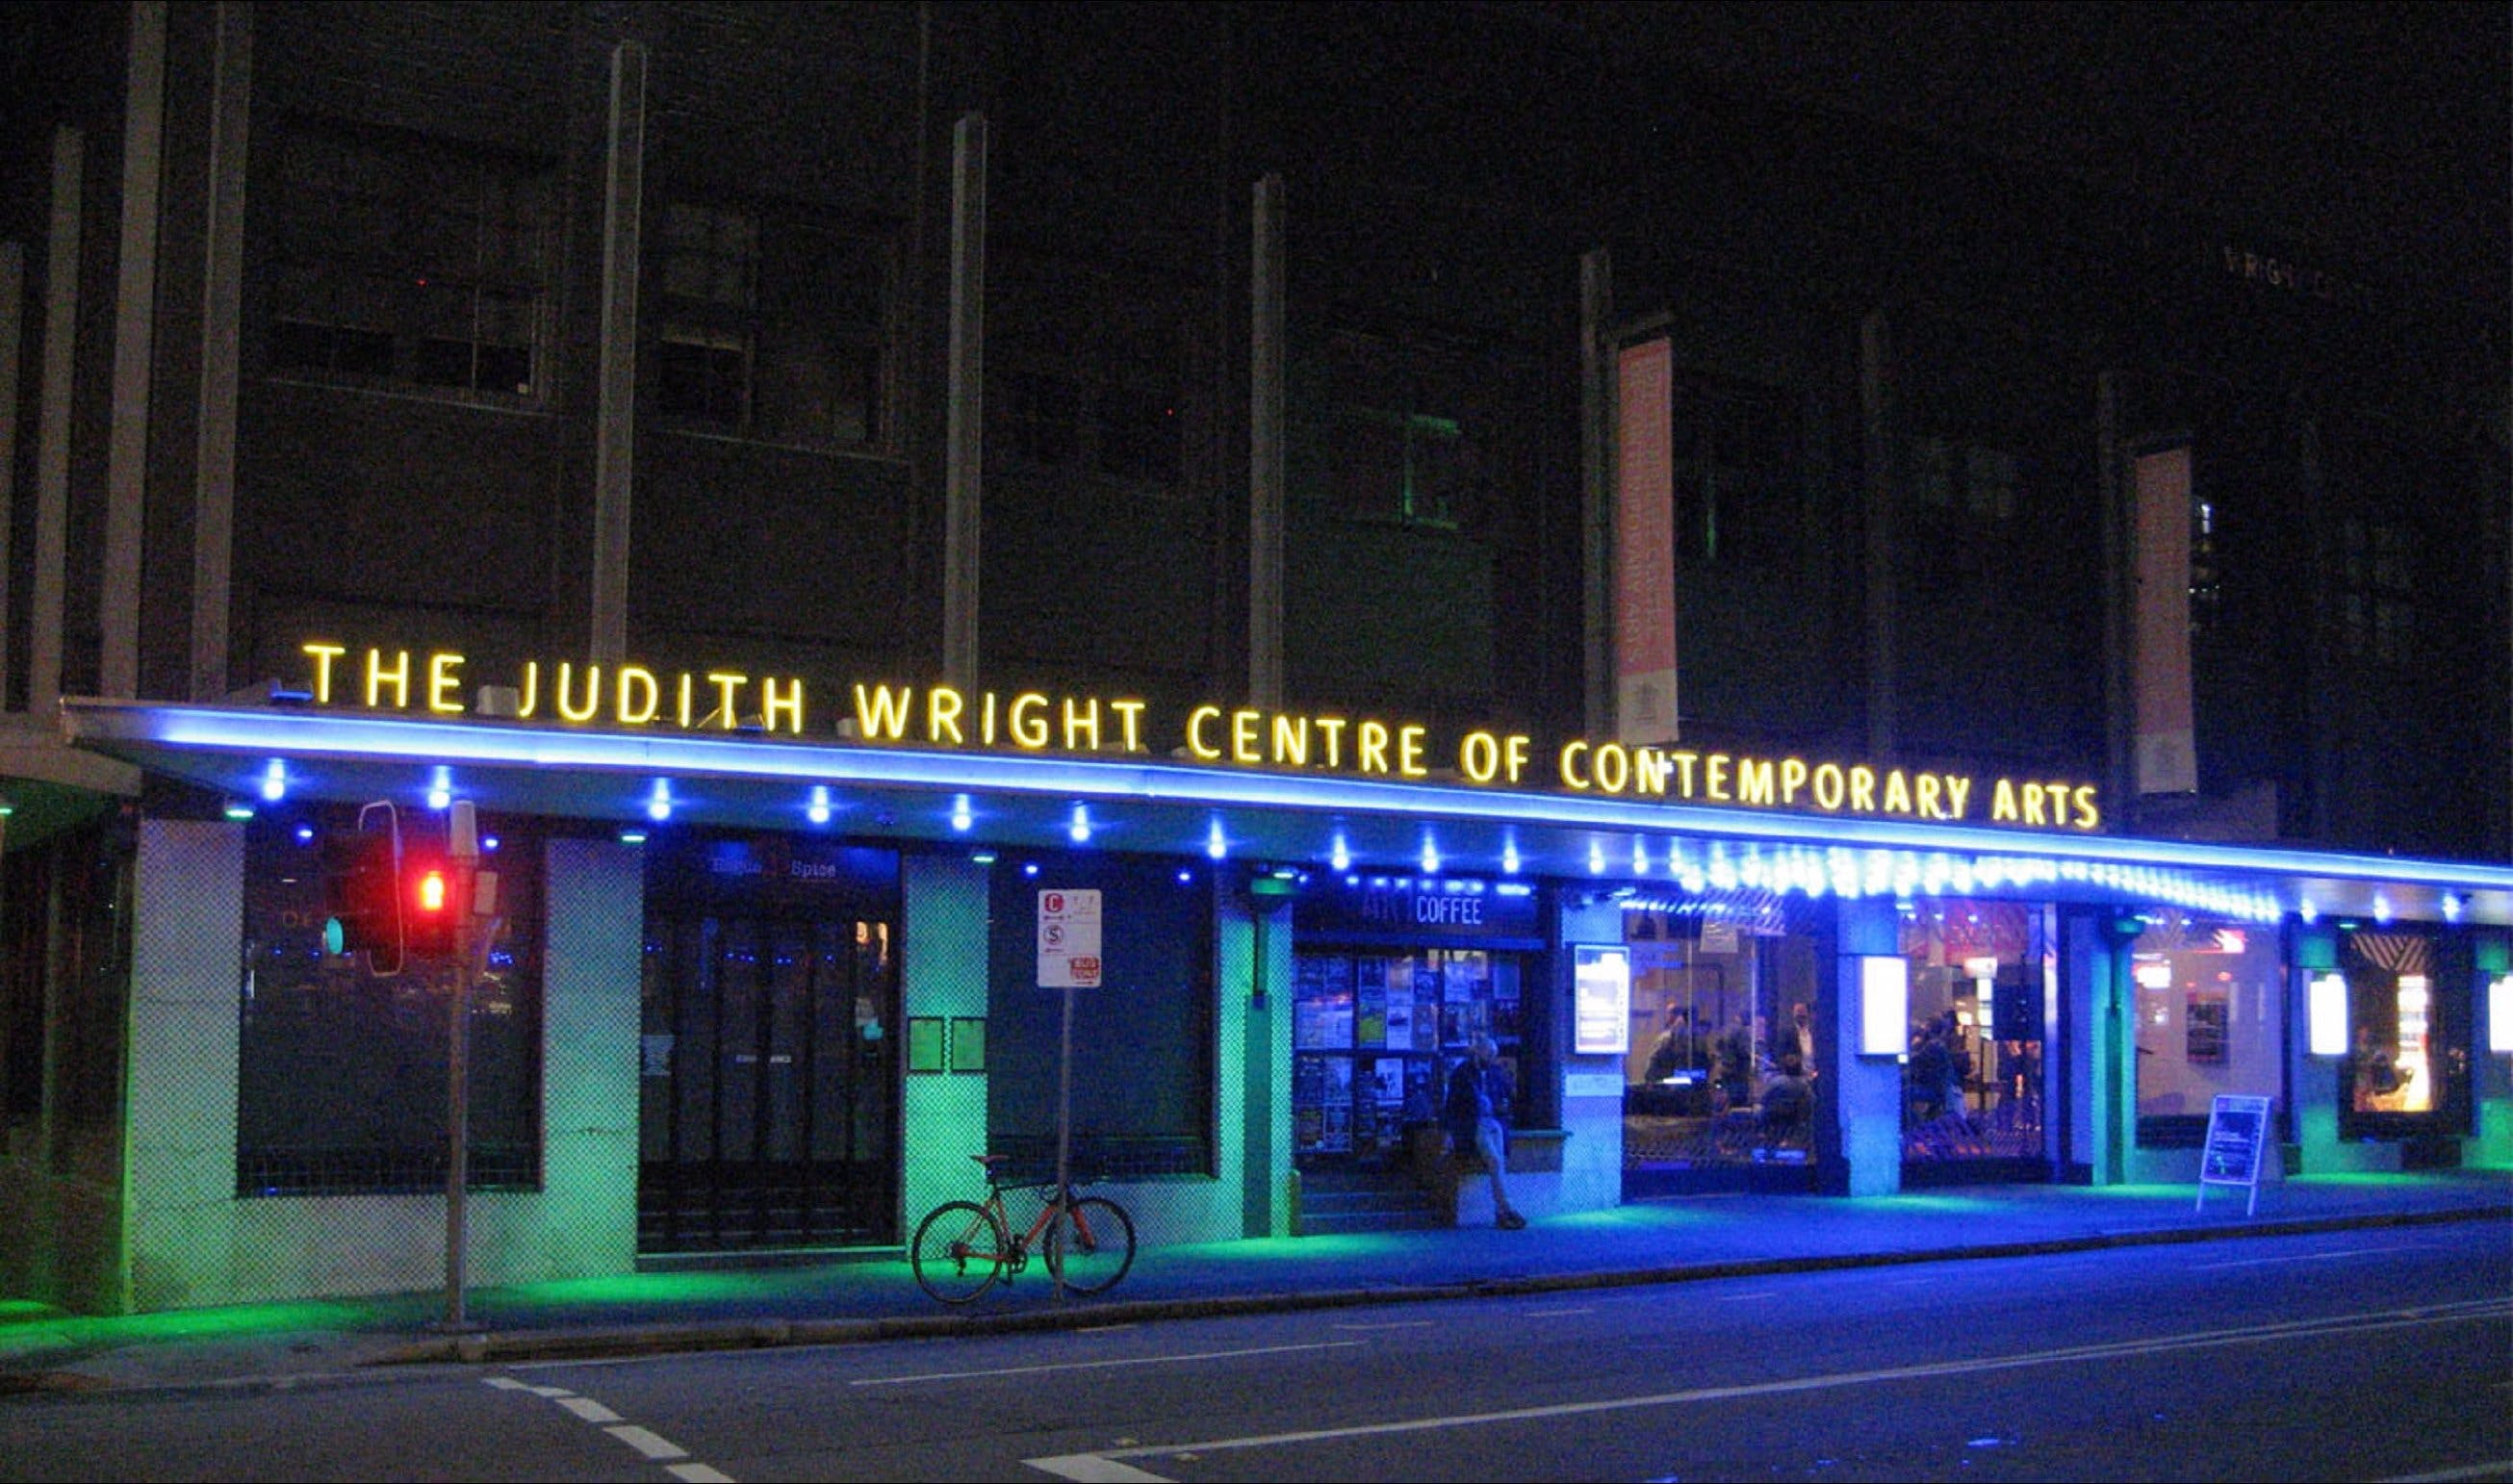 The Judith Wright Centre of Contemporary Arts Logo and Images